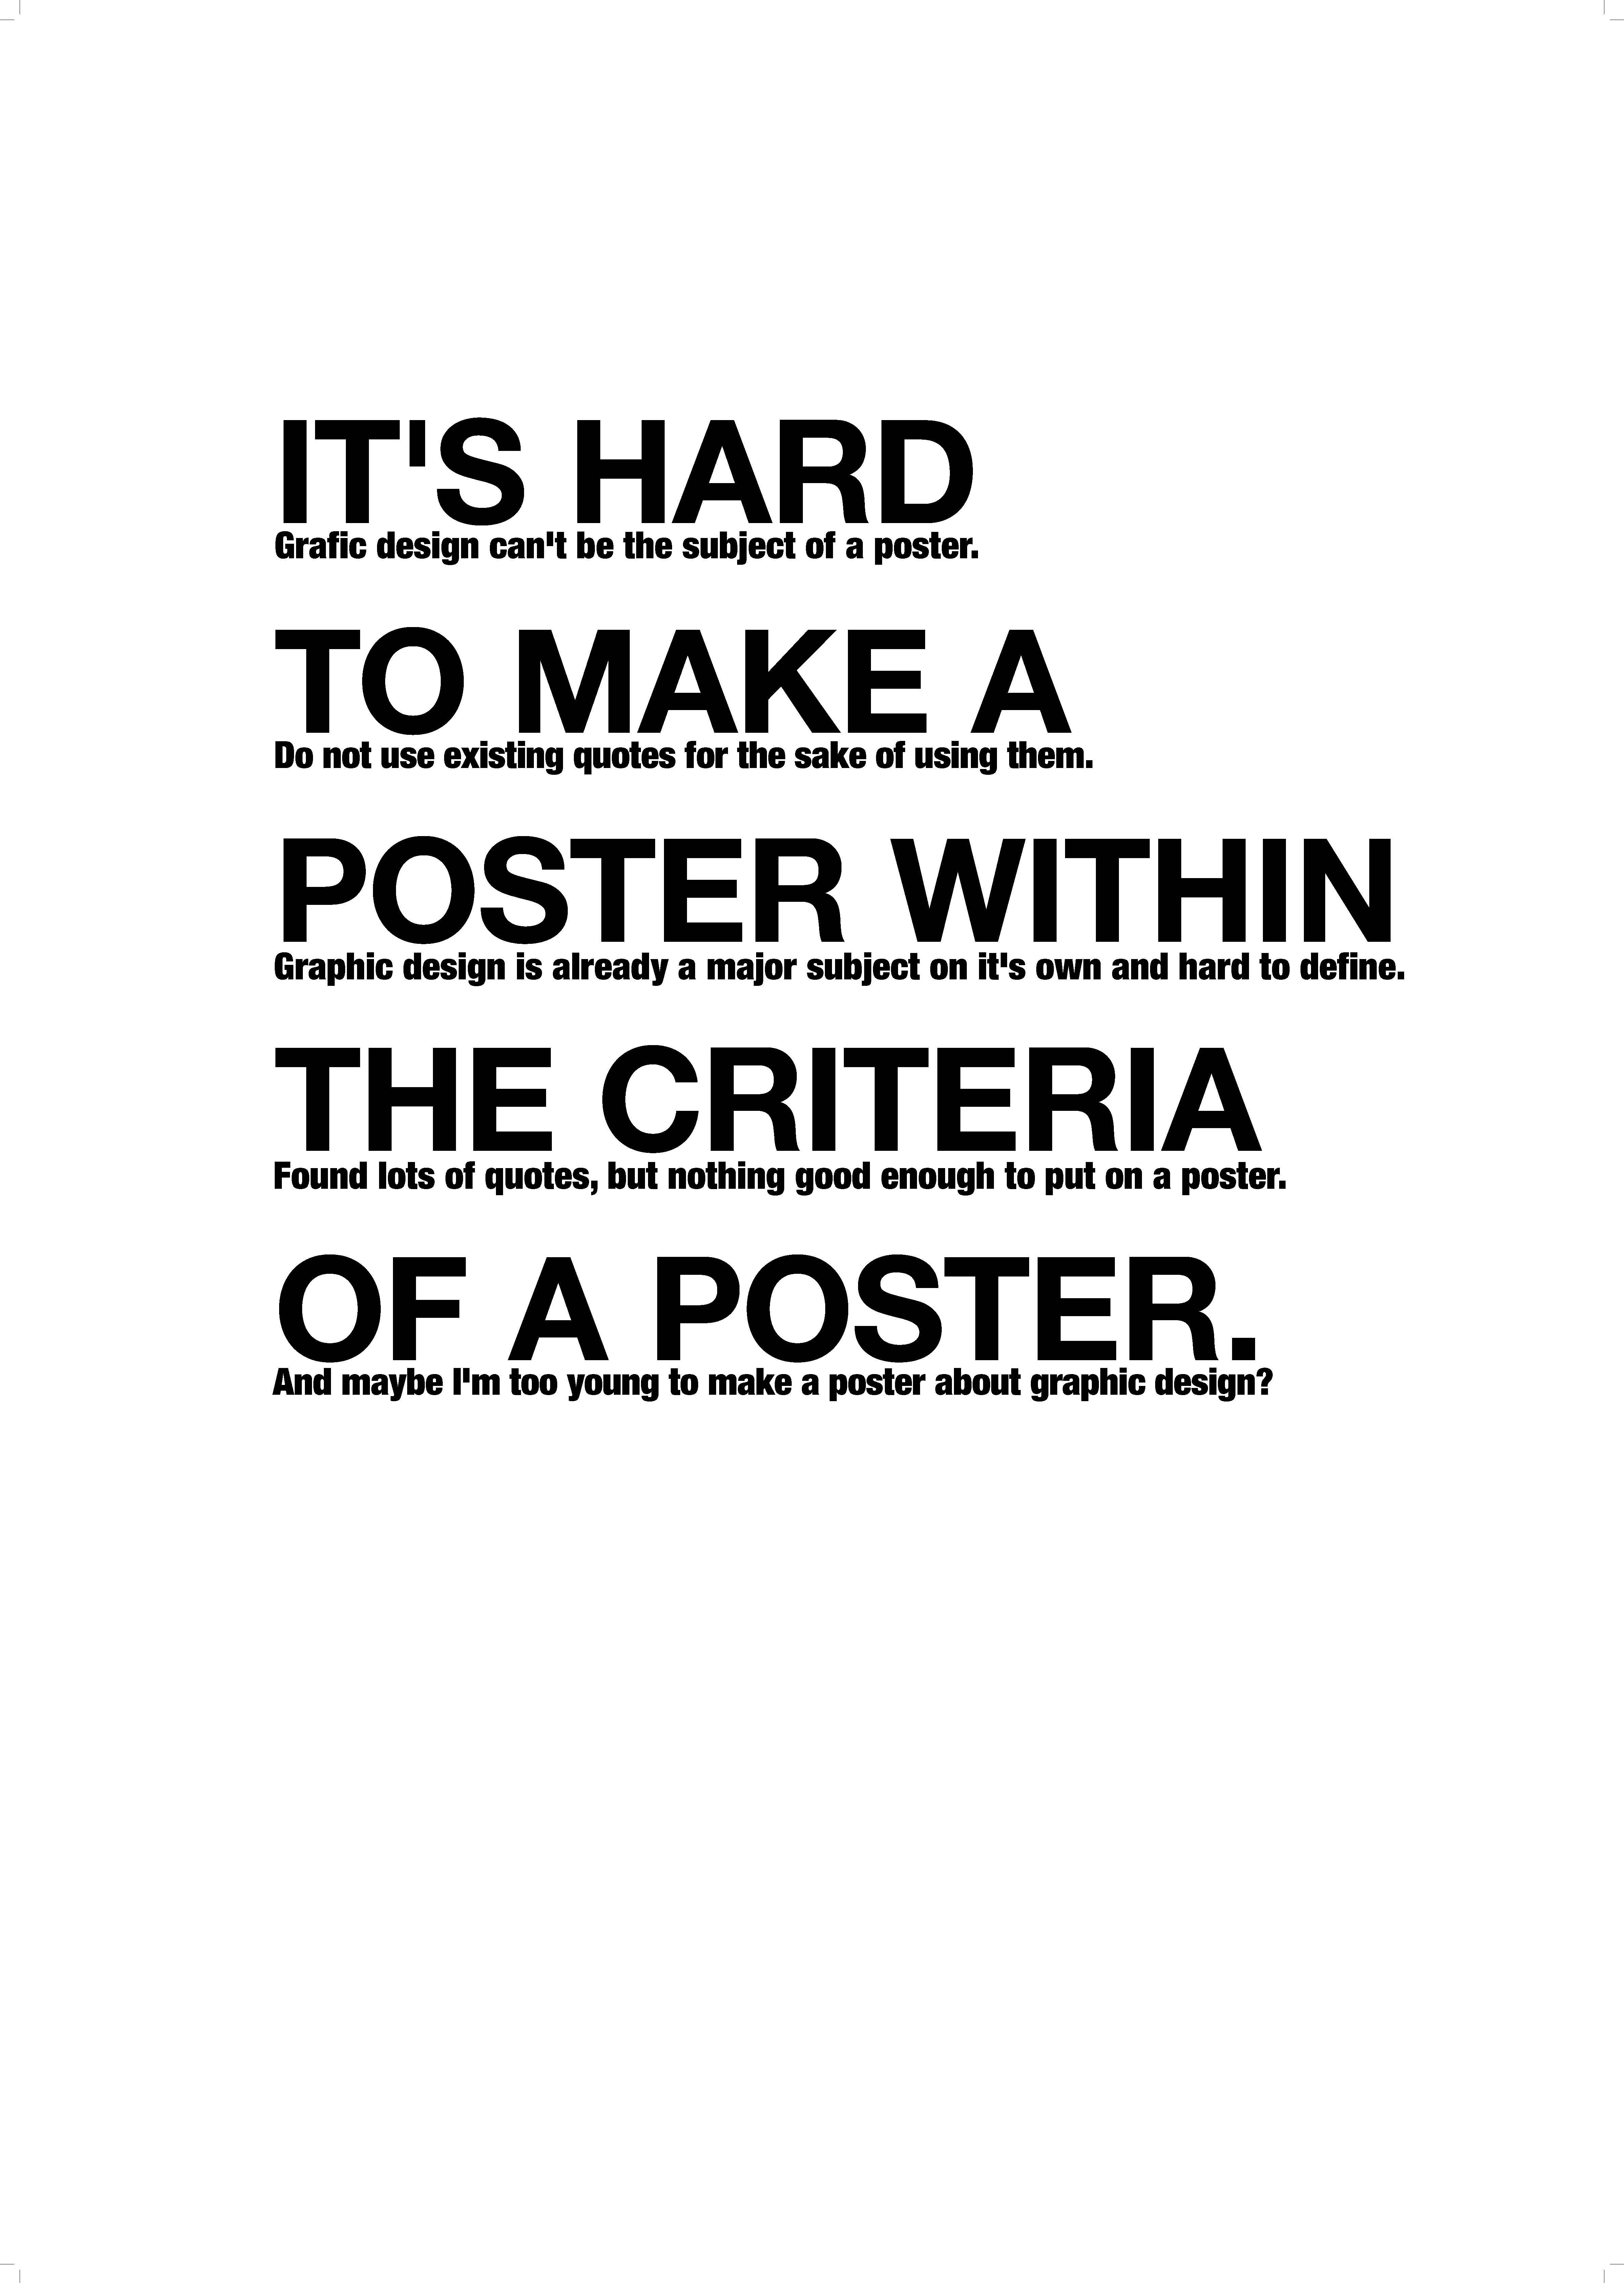 Poster design quotes advertisements